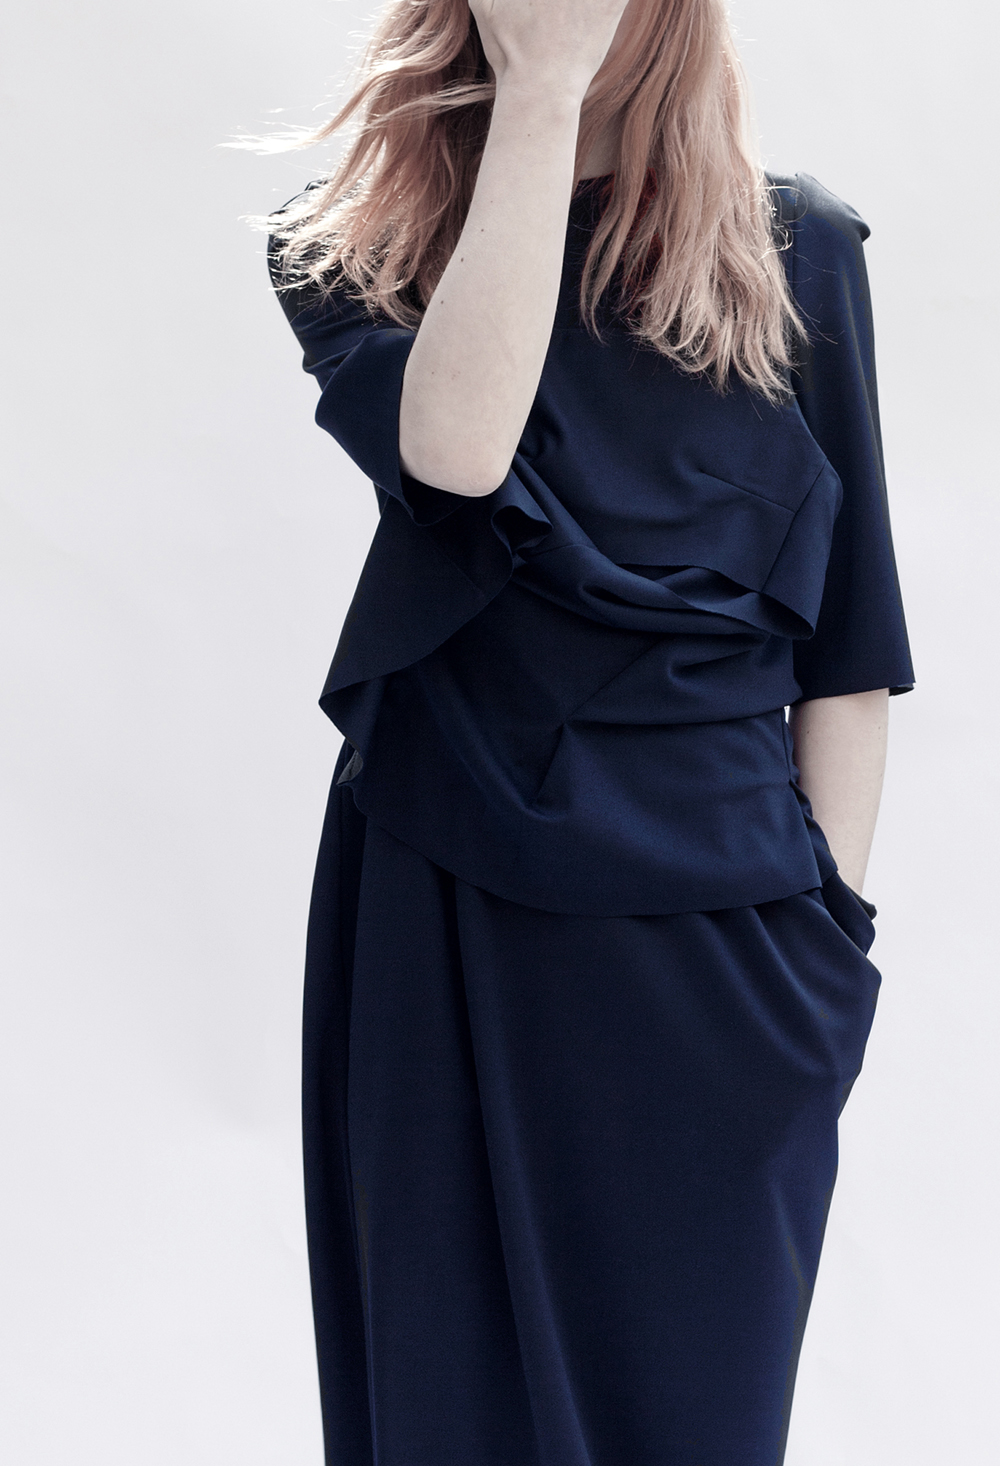 DRESS label Crisis Collection 2017 Look book Navy Blouse Polyester  Short Sleeved Sculpted Asymmetric Collapse/Support Dress with pocket  Dress-Ltd